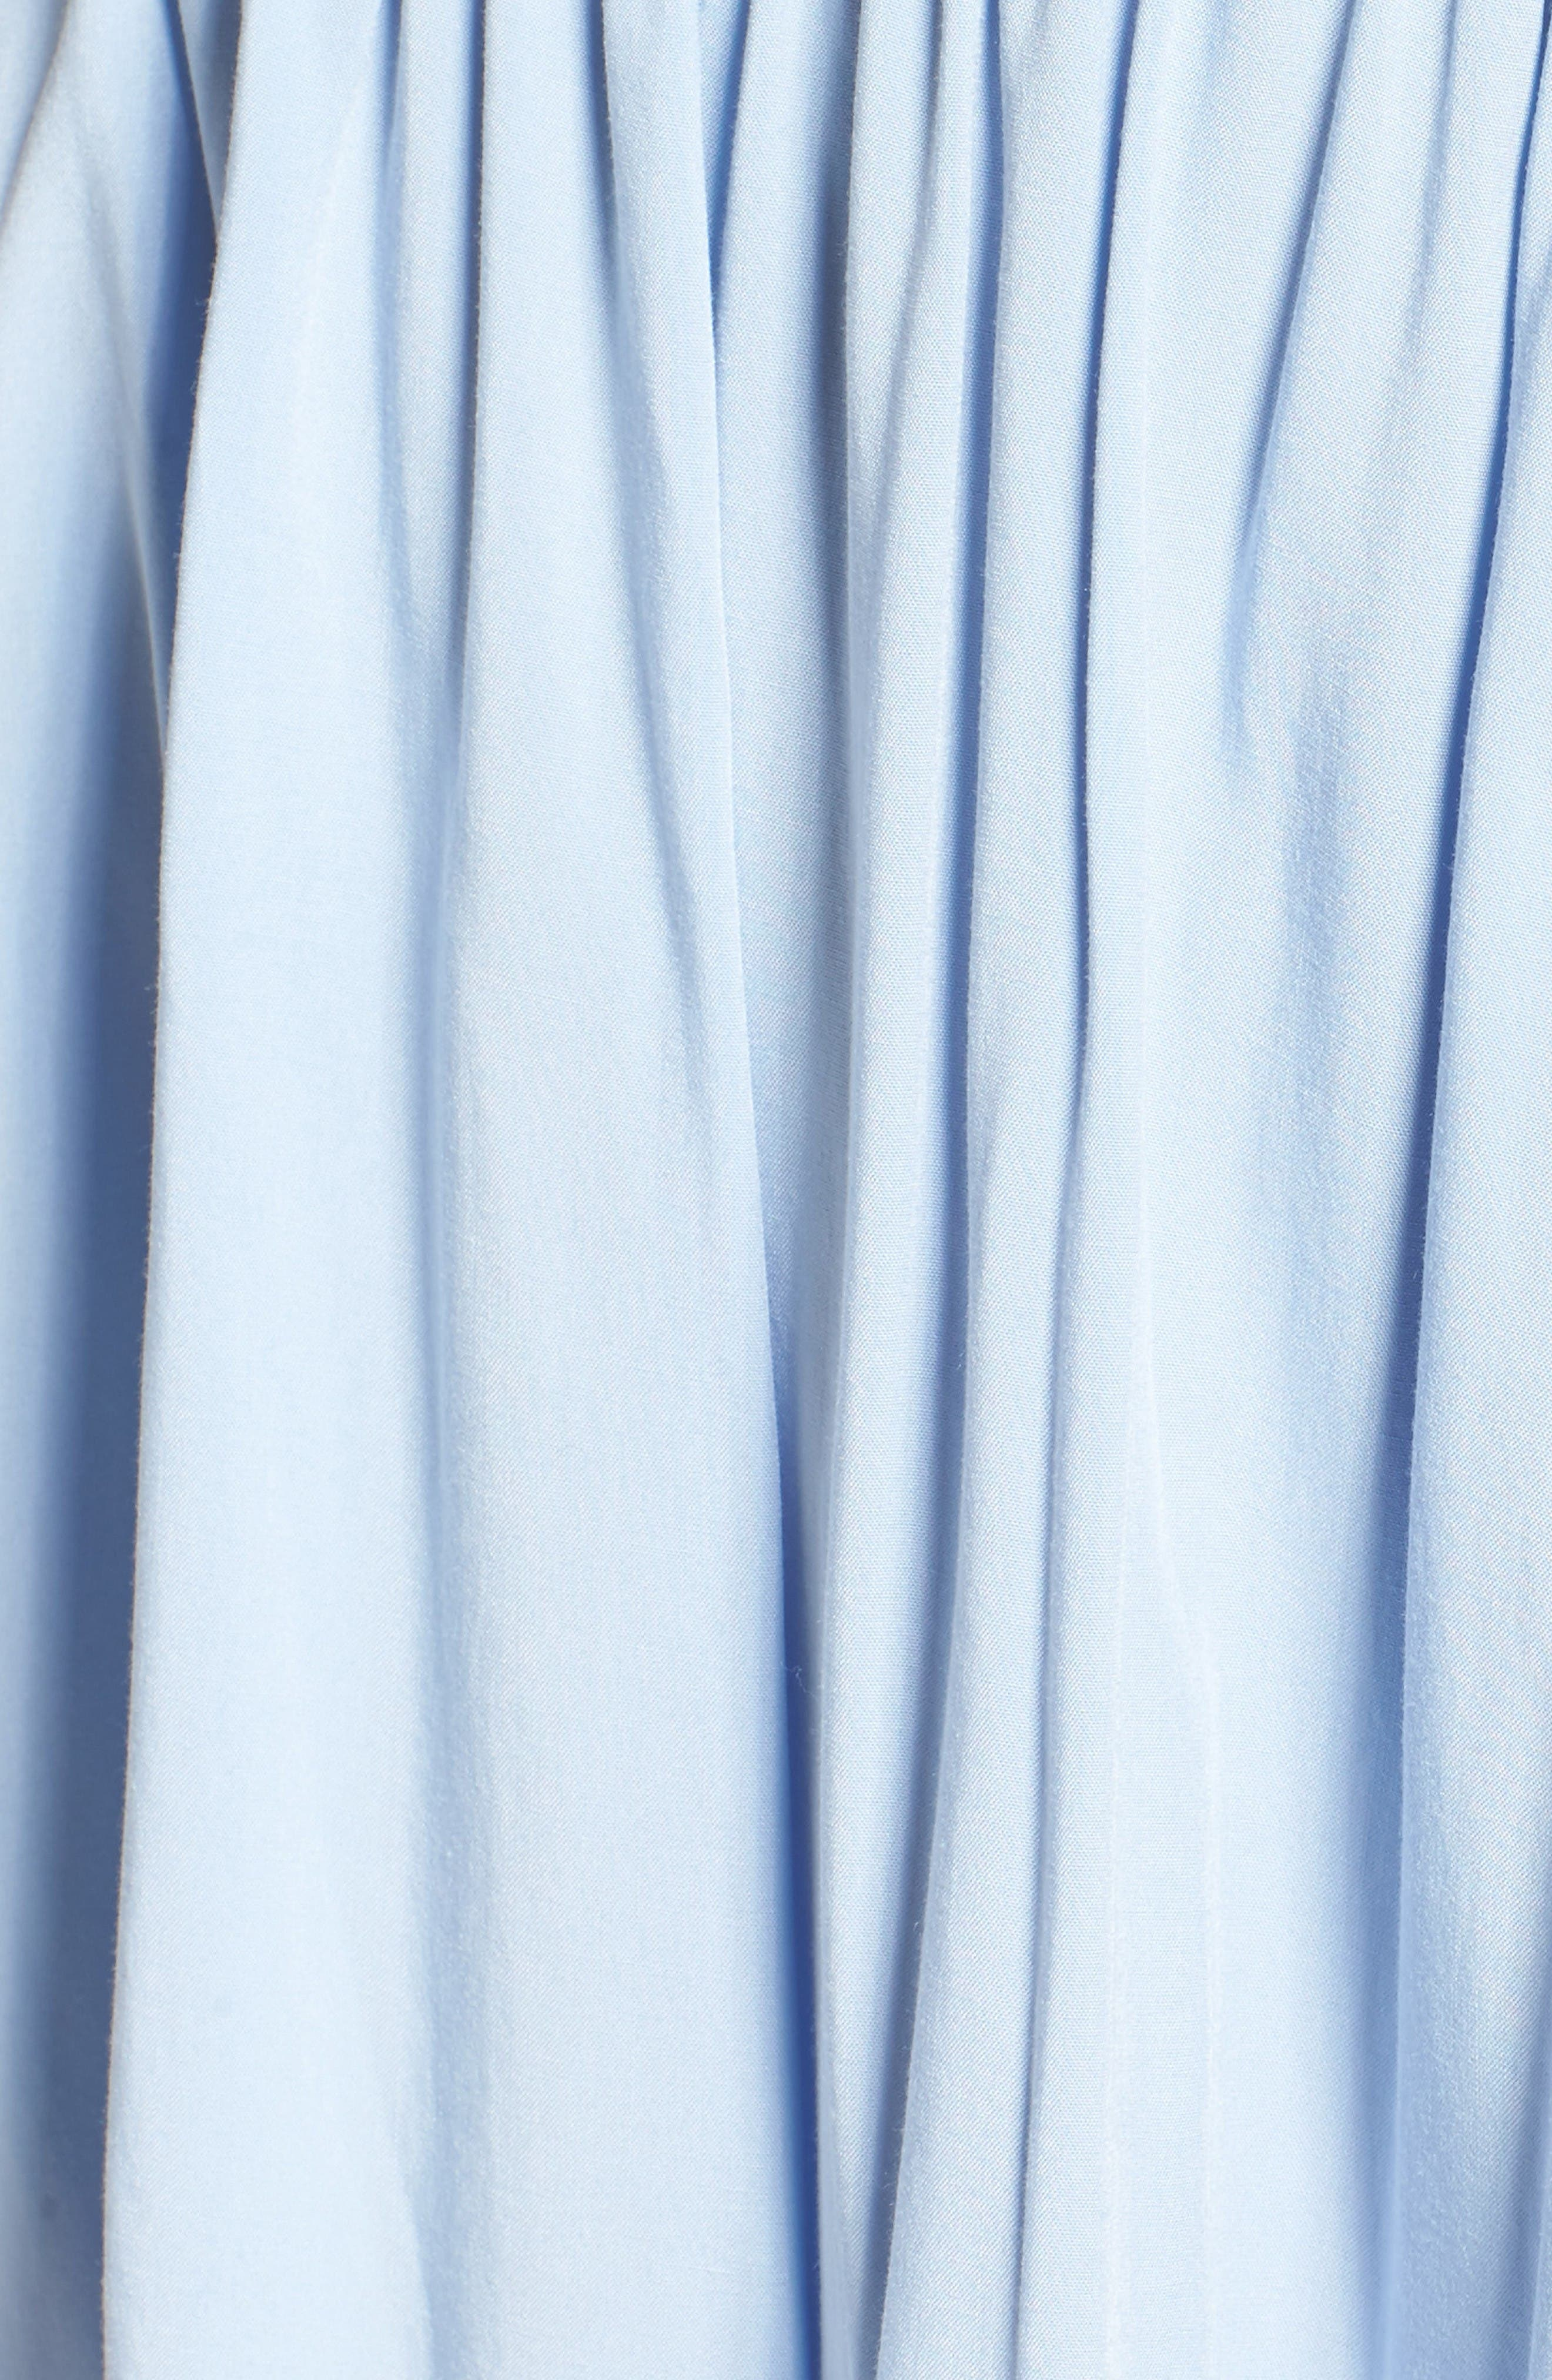 Chelsea Ruffle Bodice Off the Shoulder Dress,                             Alternate thumbnail 6, color,                             Sky Blue